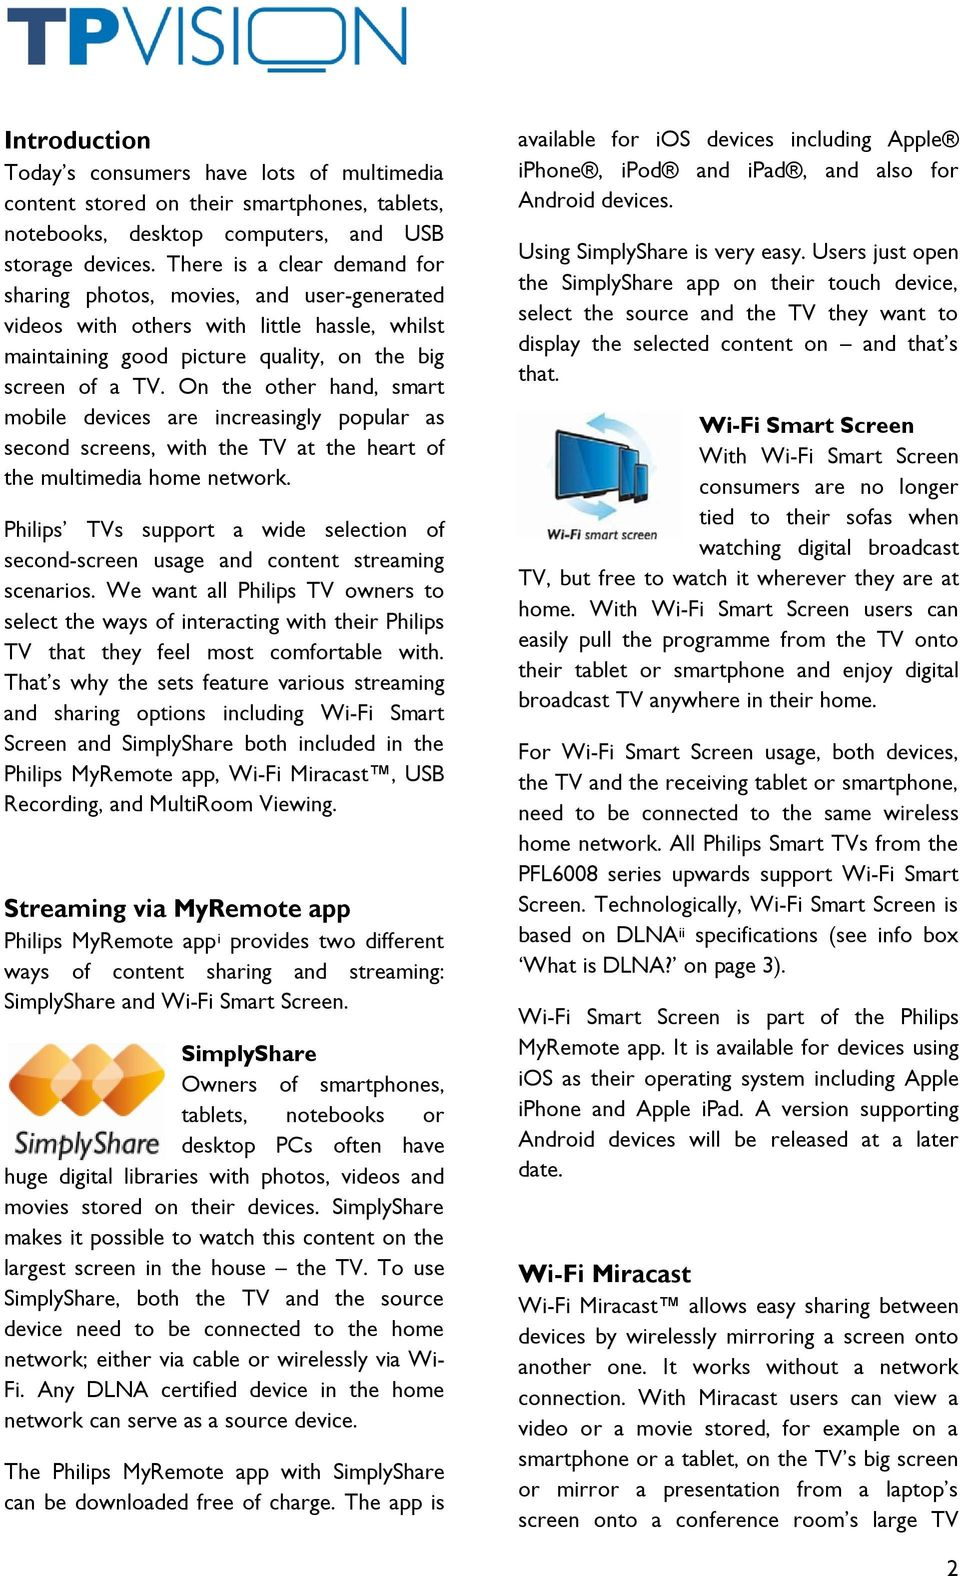 Streaming and content sharing on Philips TVs - PDF